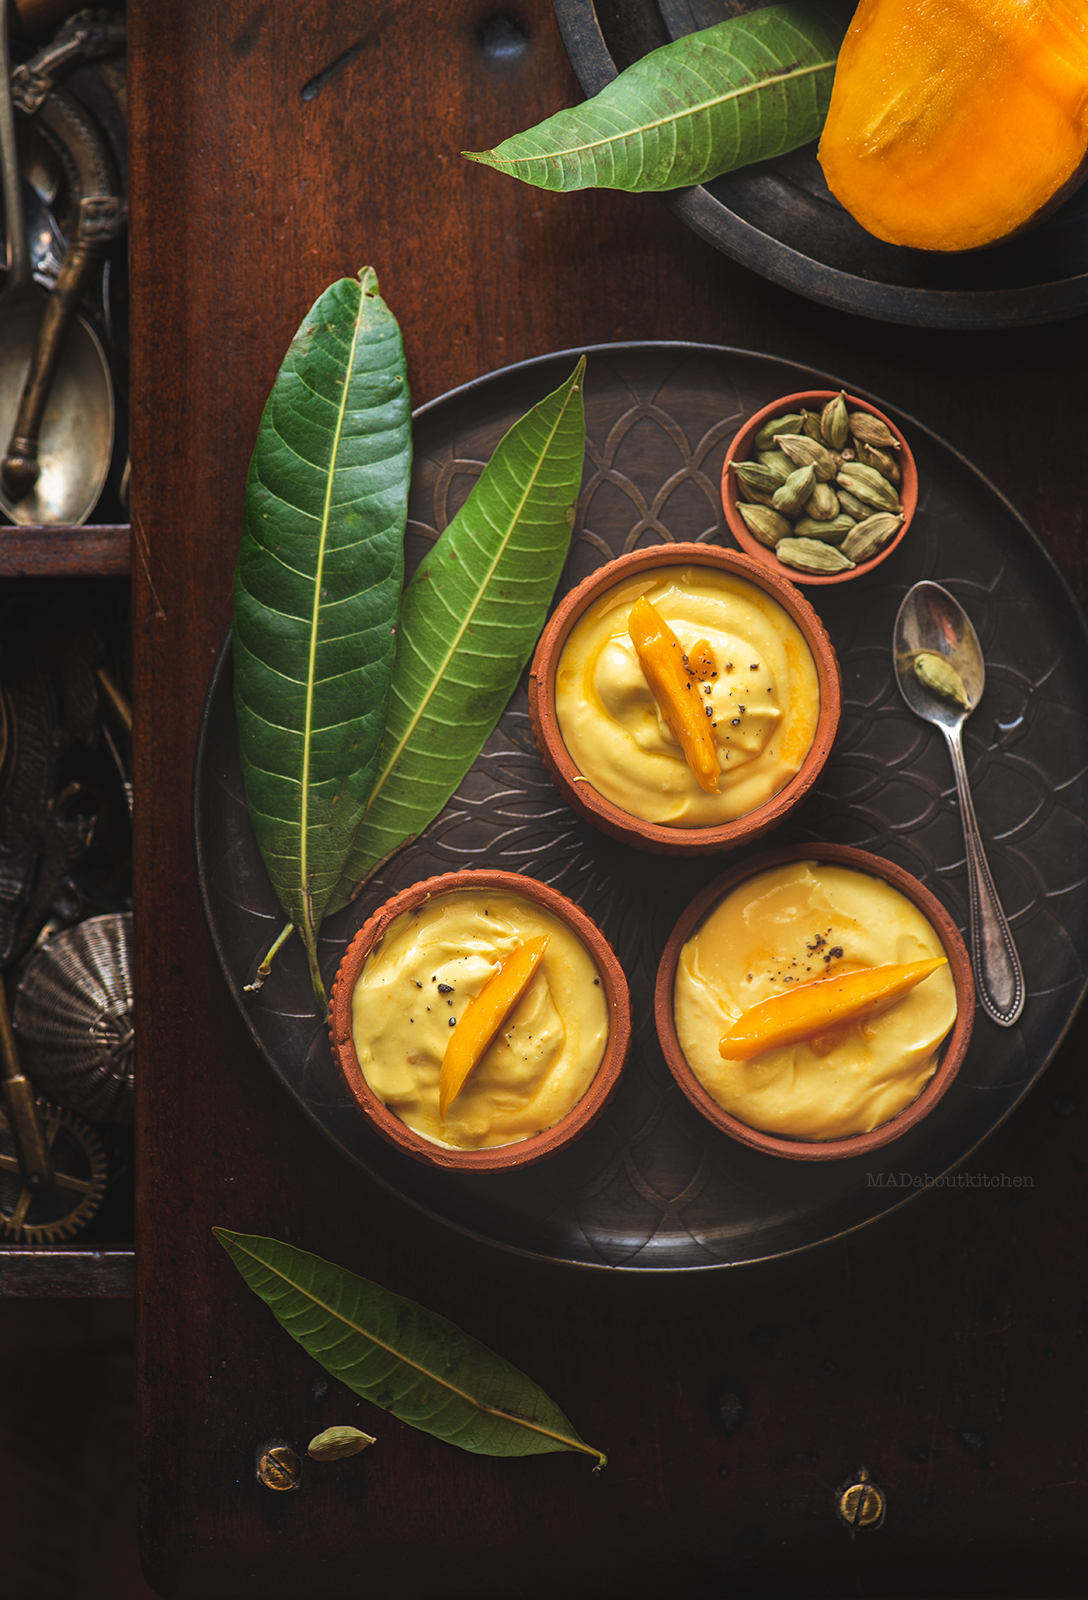 Mango Shrikhand is nothing but Mango flavoured yogurt that is absolutely rich,silky and creamy and is served chilled as dessert or with Poori.